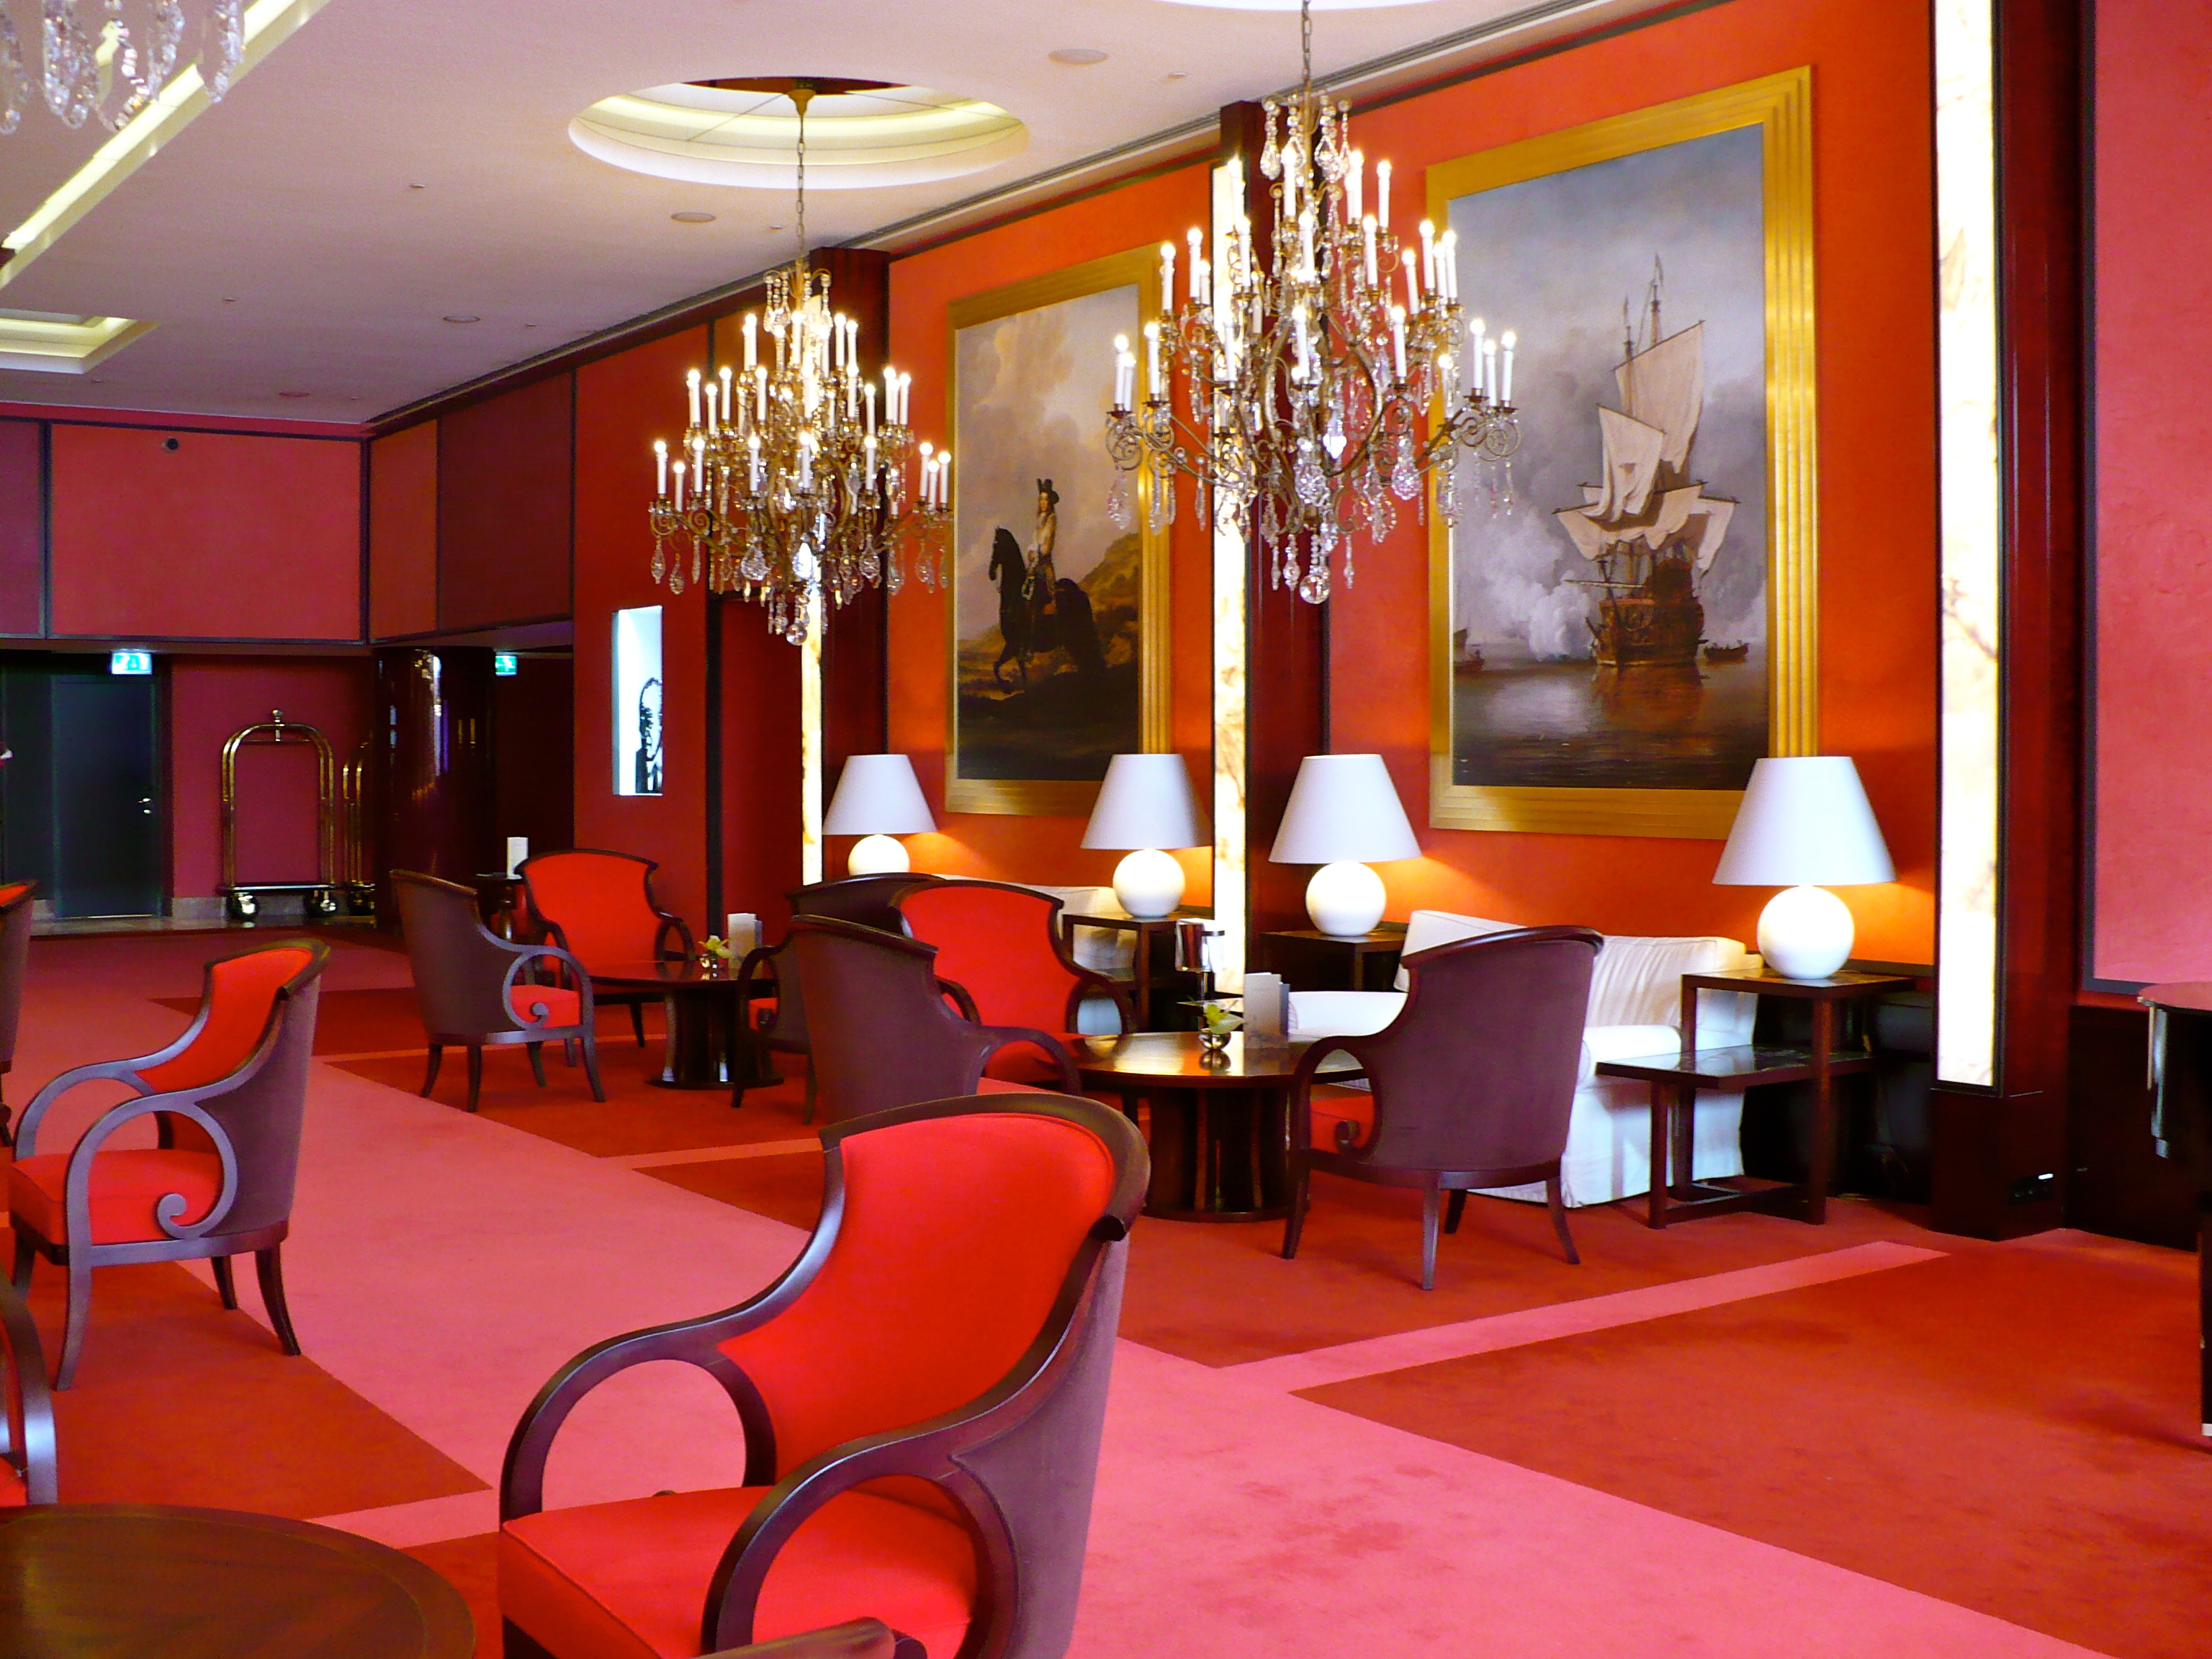 The plush red lobby stretches out into a lounge and culminates in a circular bar  Hotel L'Europe: The Heart of Amsterdam Hotel L'Europe: The Heart of Amsterdam Hotel Leurope Amsterdam 1